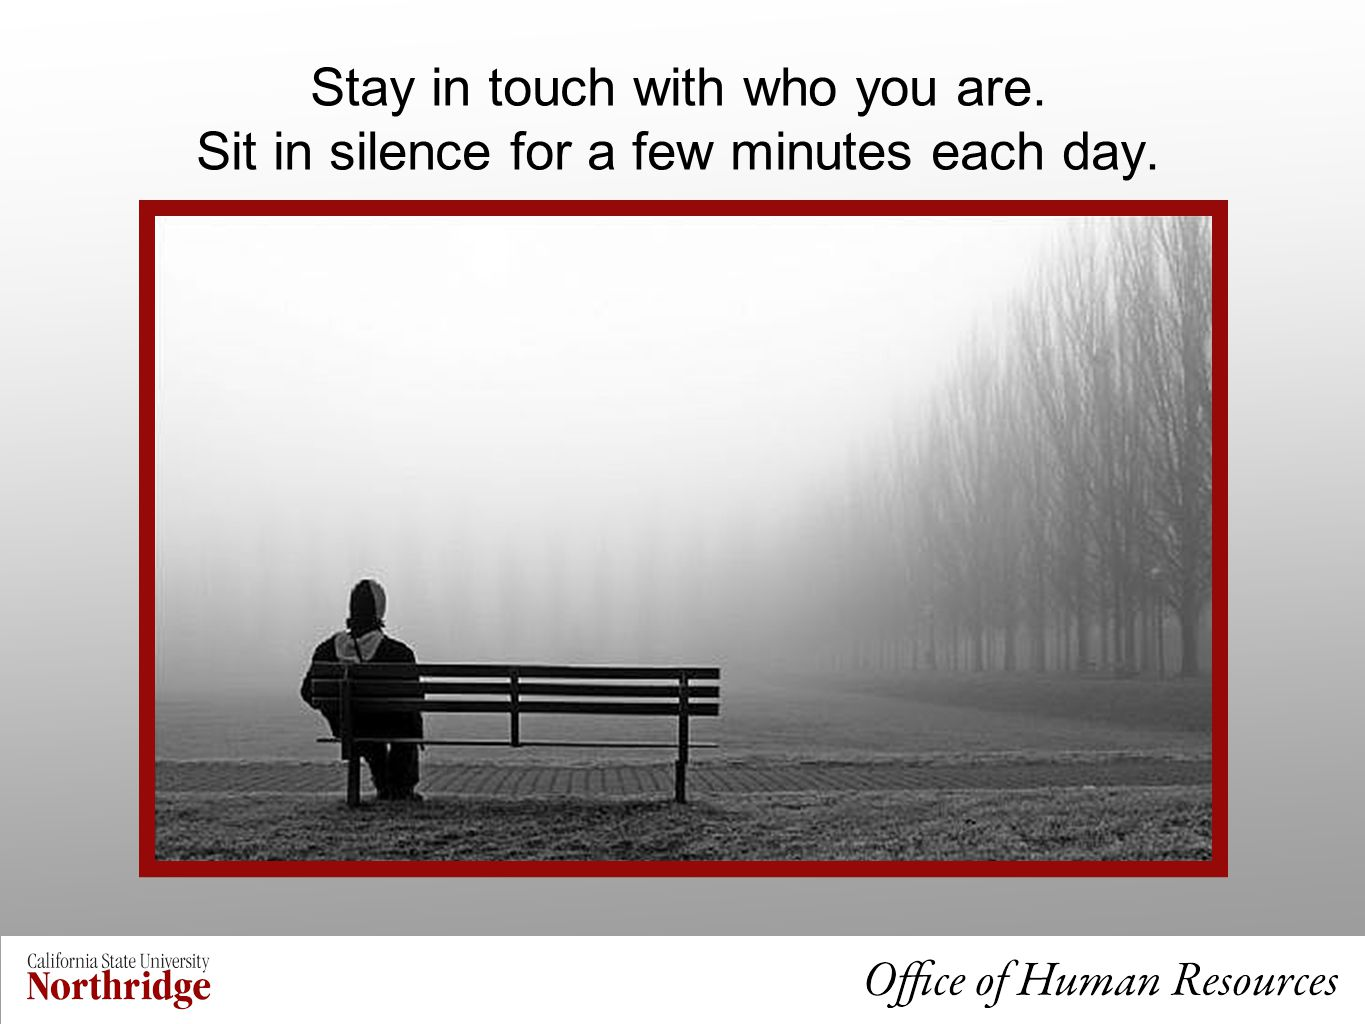 Stay in touch with who you are. Sit in silence for a few minutes each day.